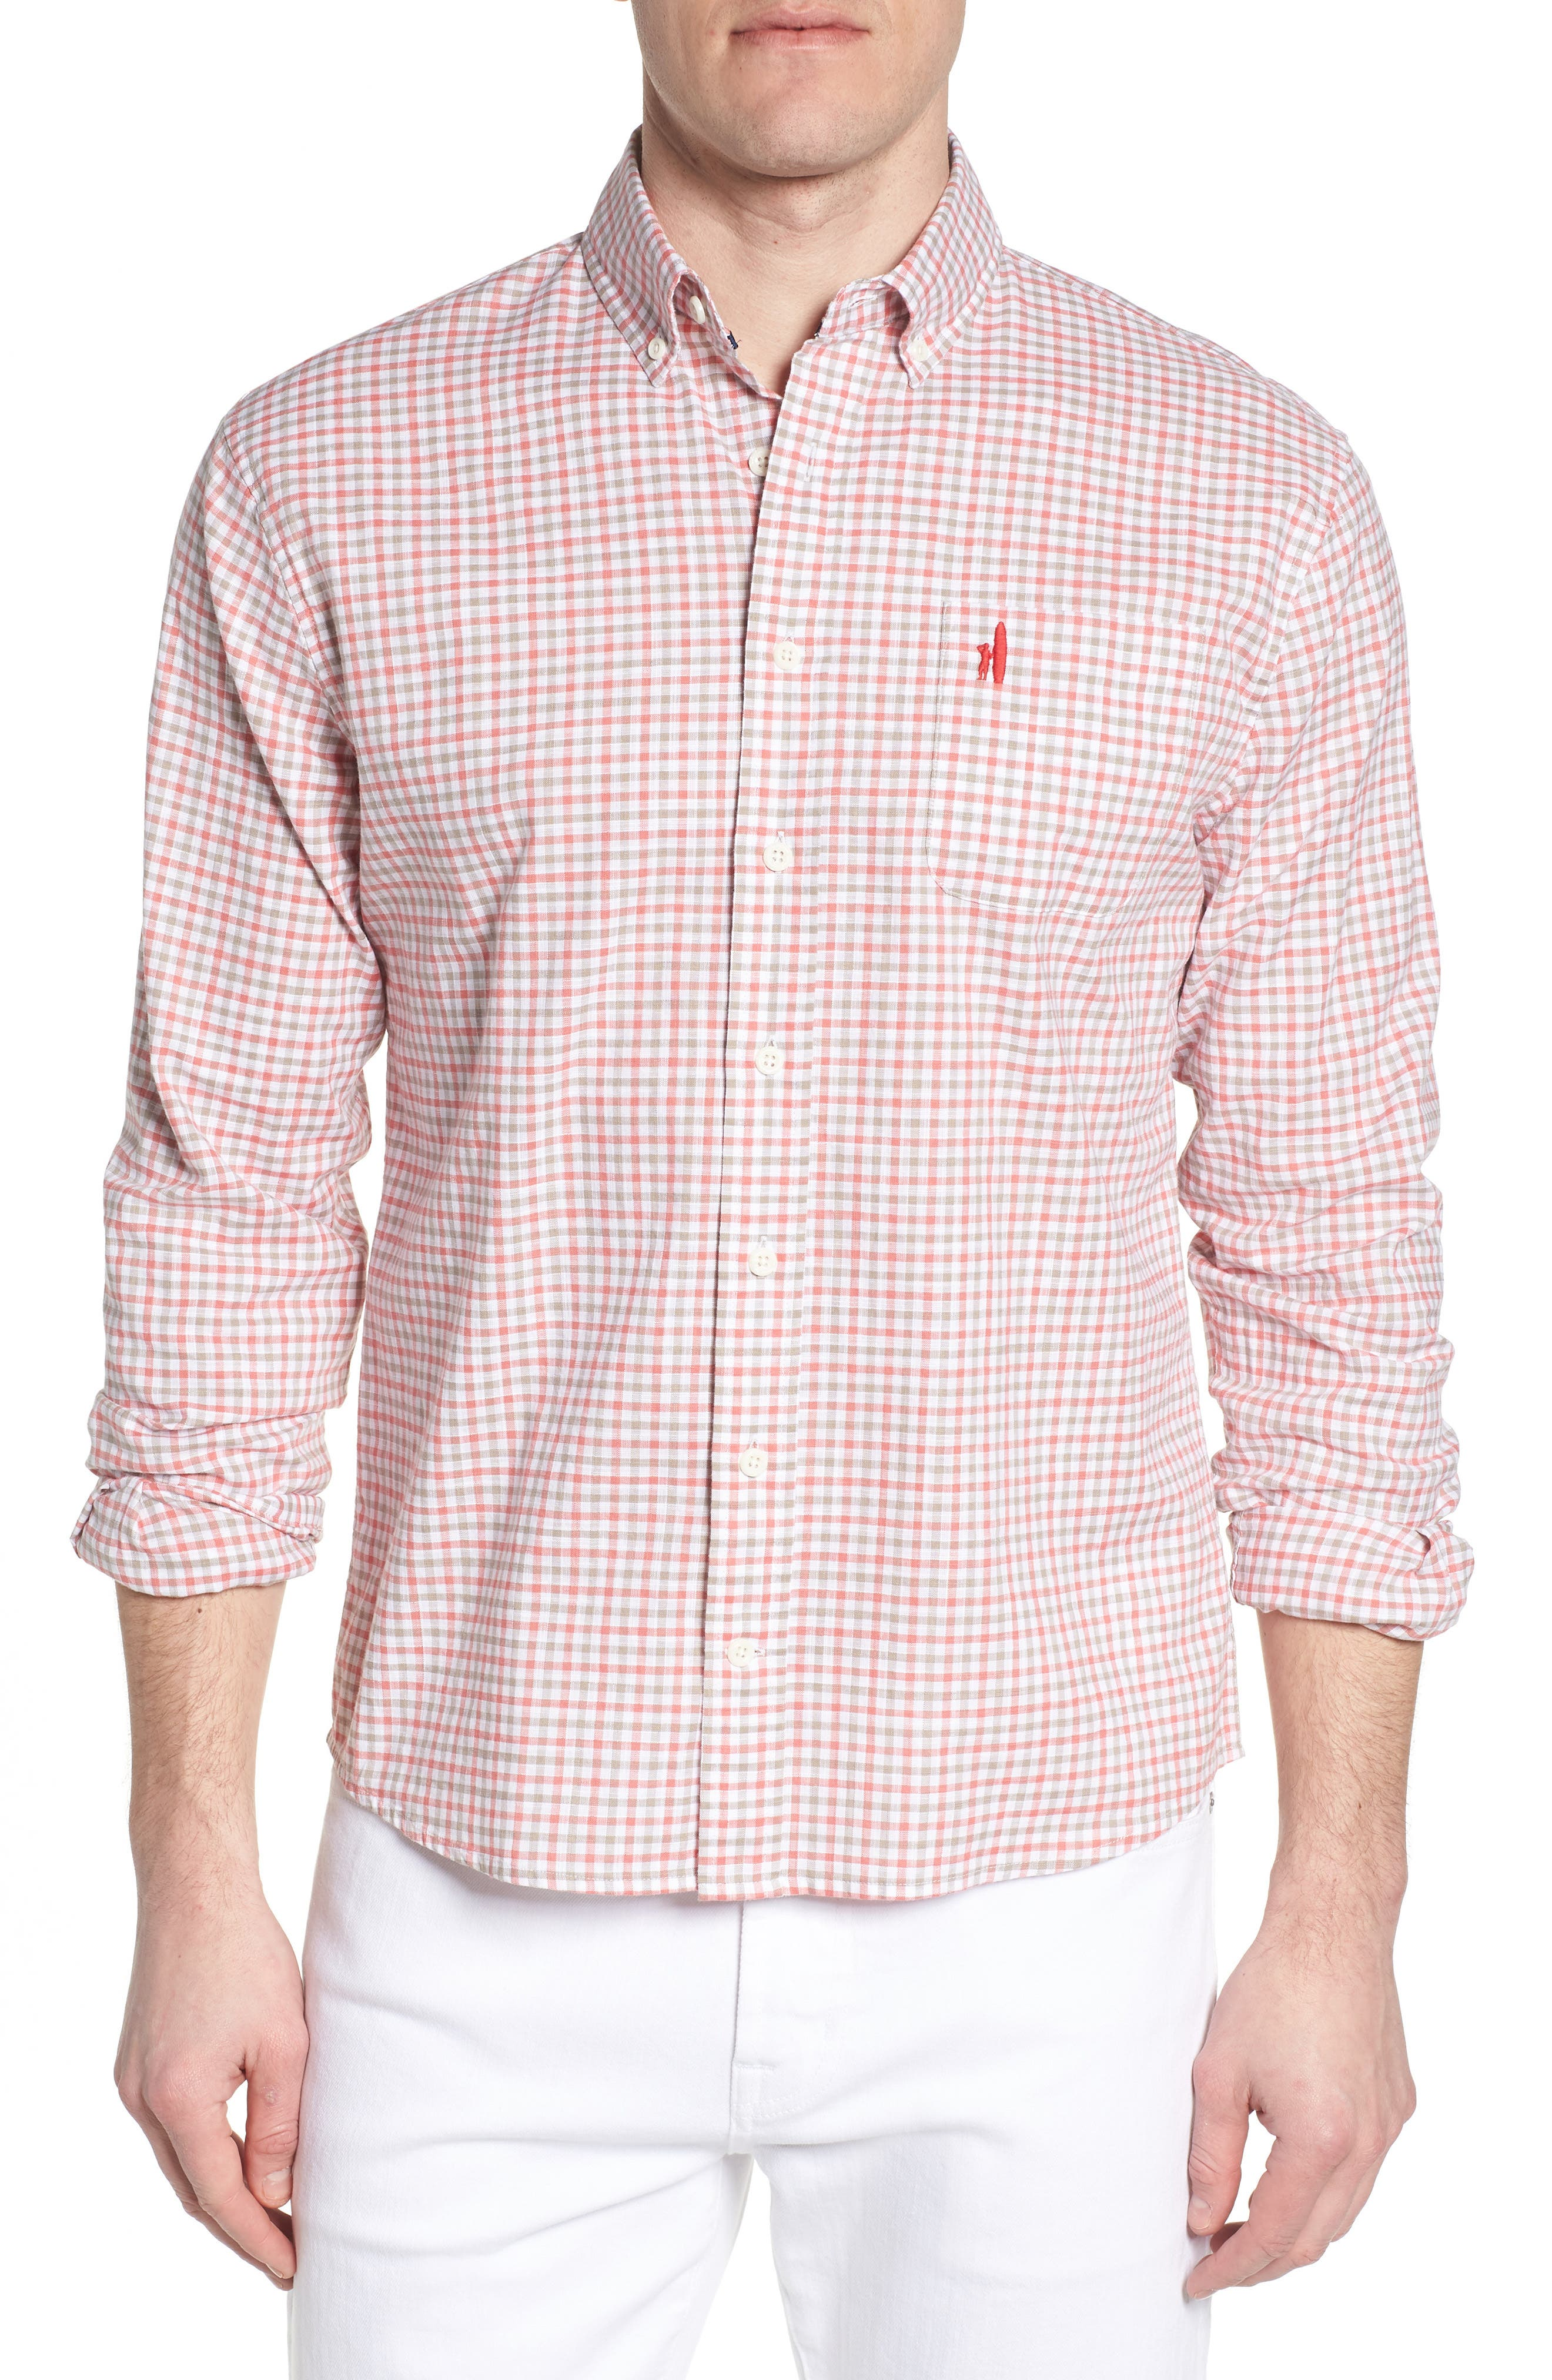 Driscoll Regular Fit Sport Shirt,                             Main thumbnail 1, color,                             Malibu Red